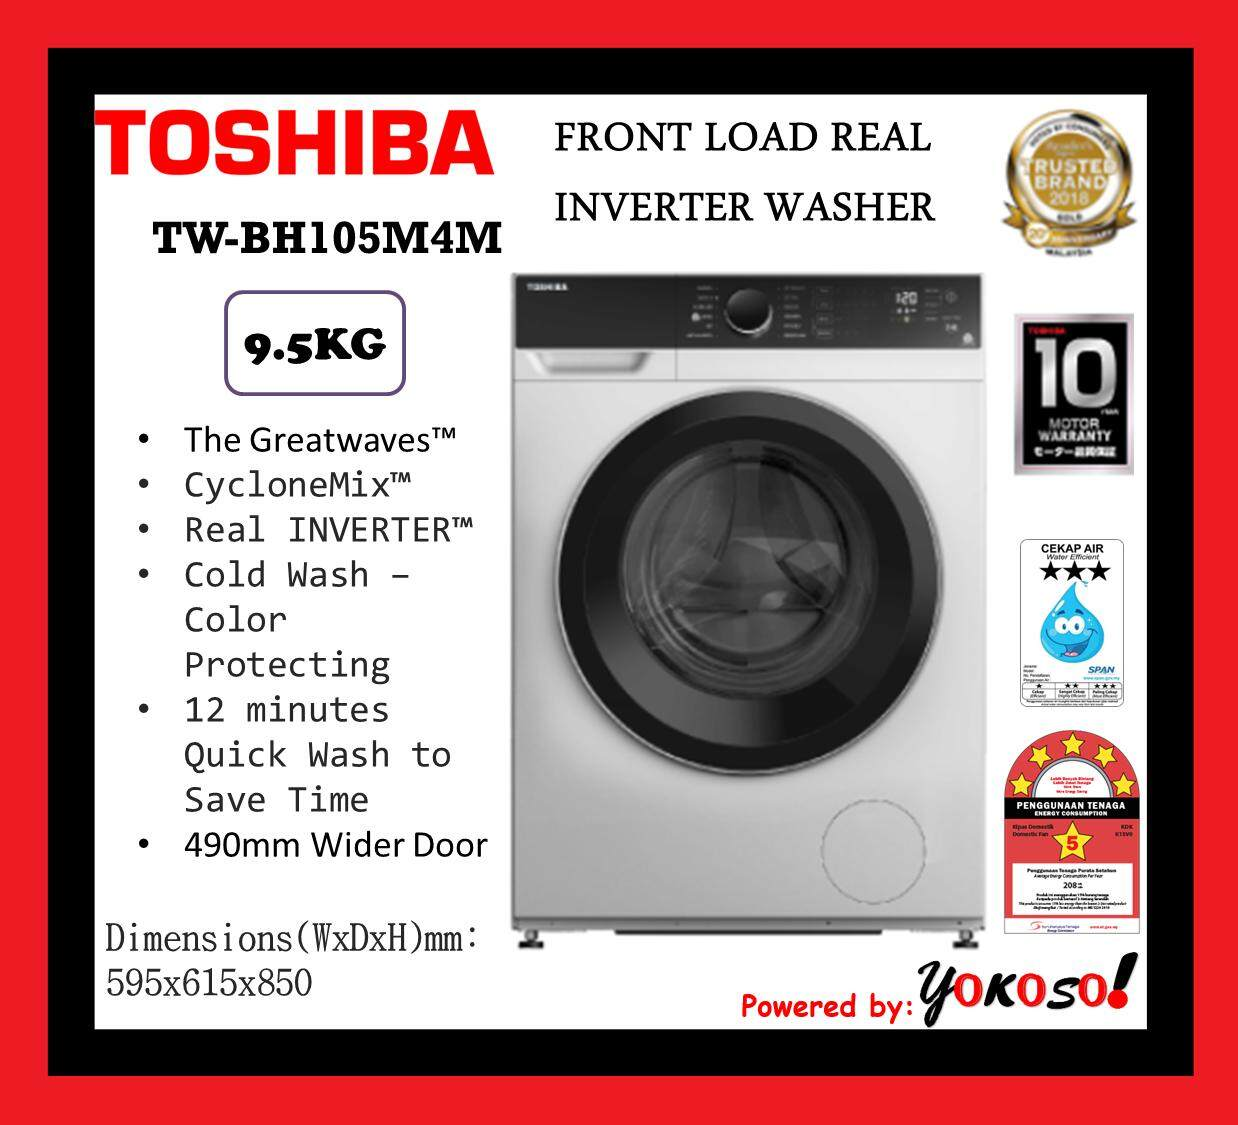 Toshiba TW-BH105M4M 9.5KG FRONT LOAD REAL INVERTER WASHER